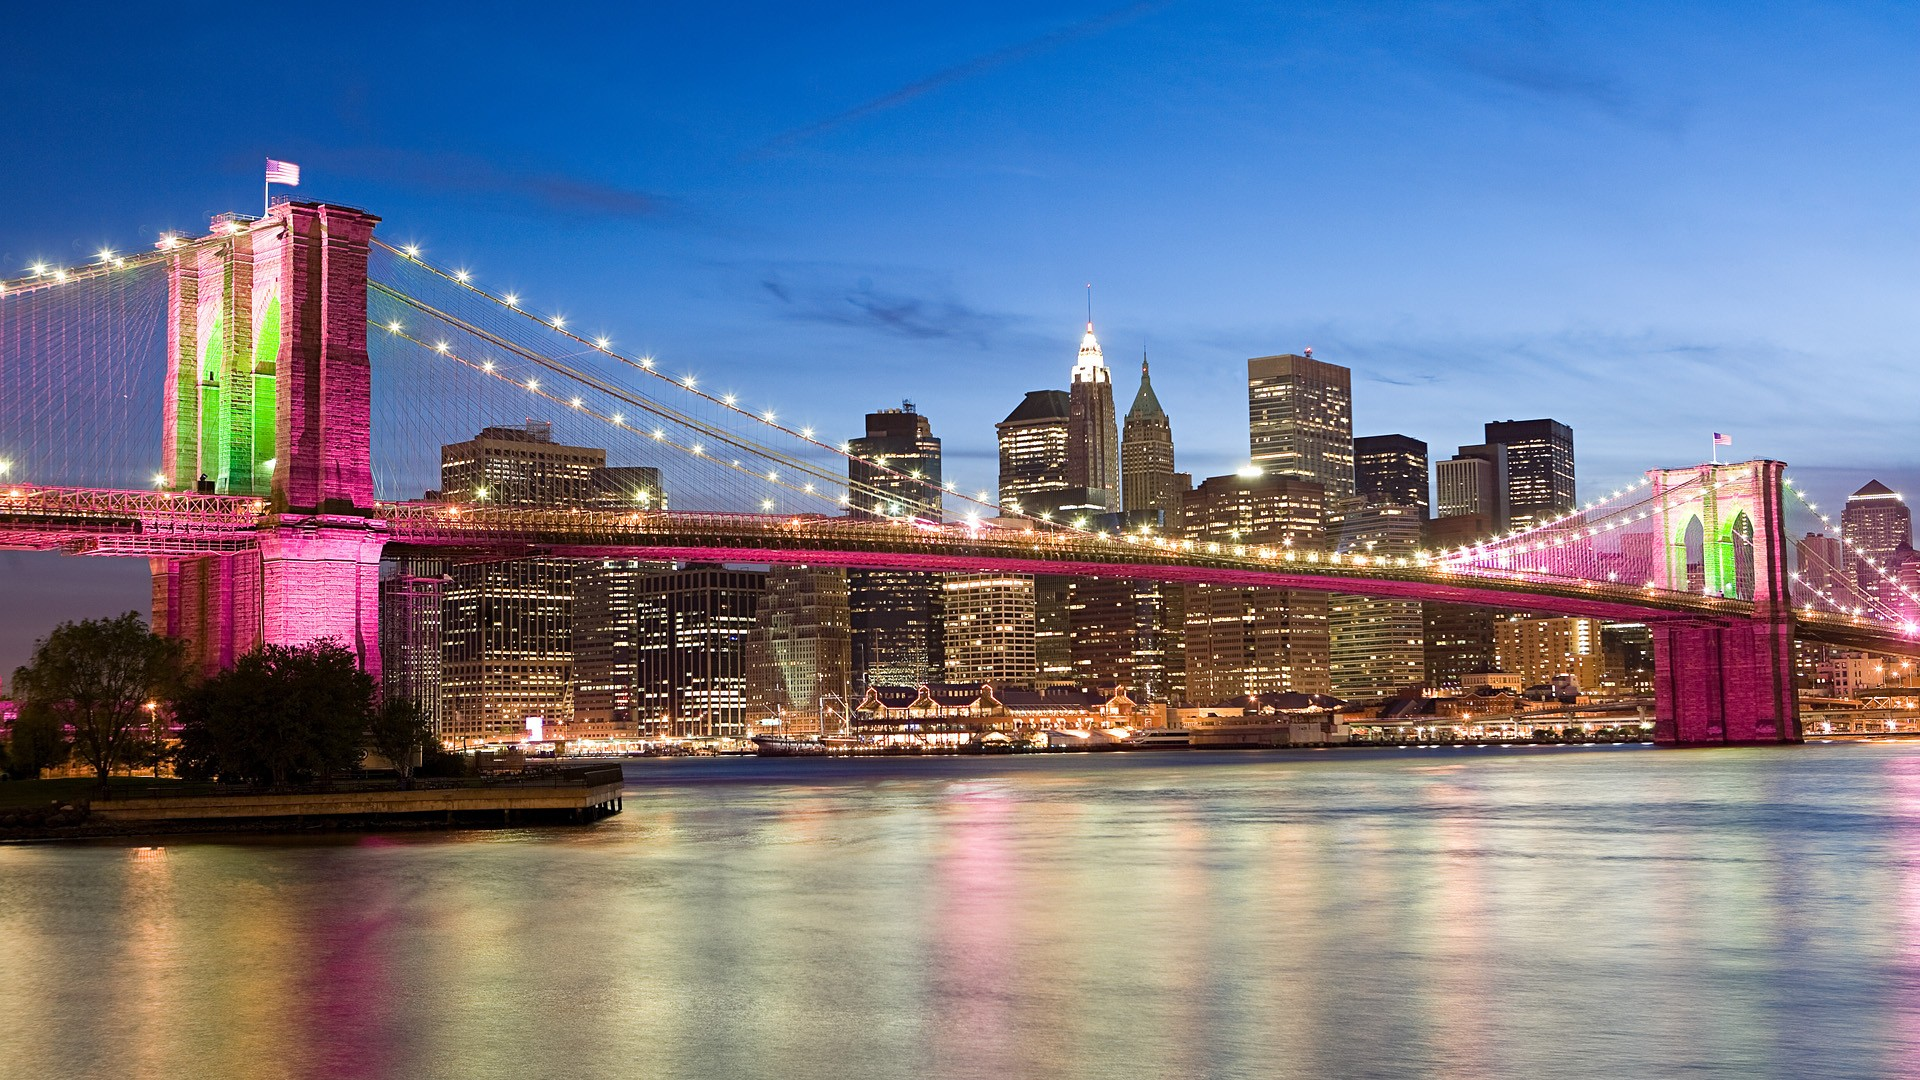 El puente rosado de Brooklyn Bridge - 1920x1080